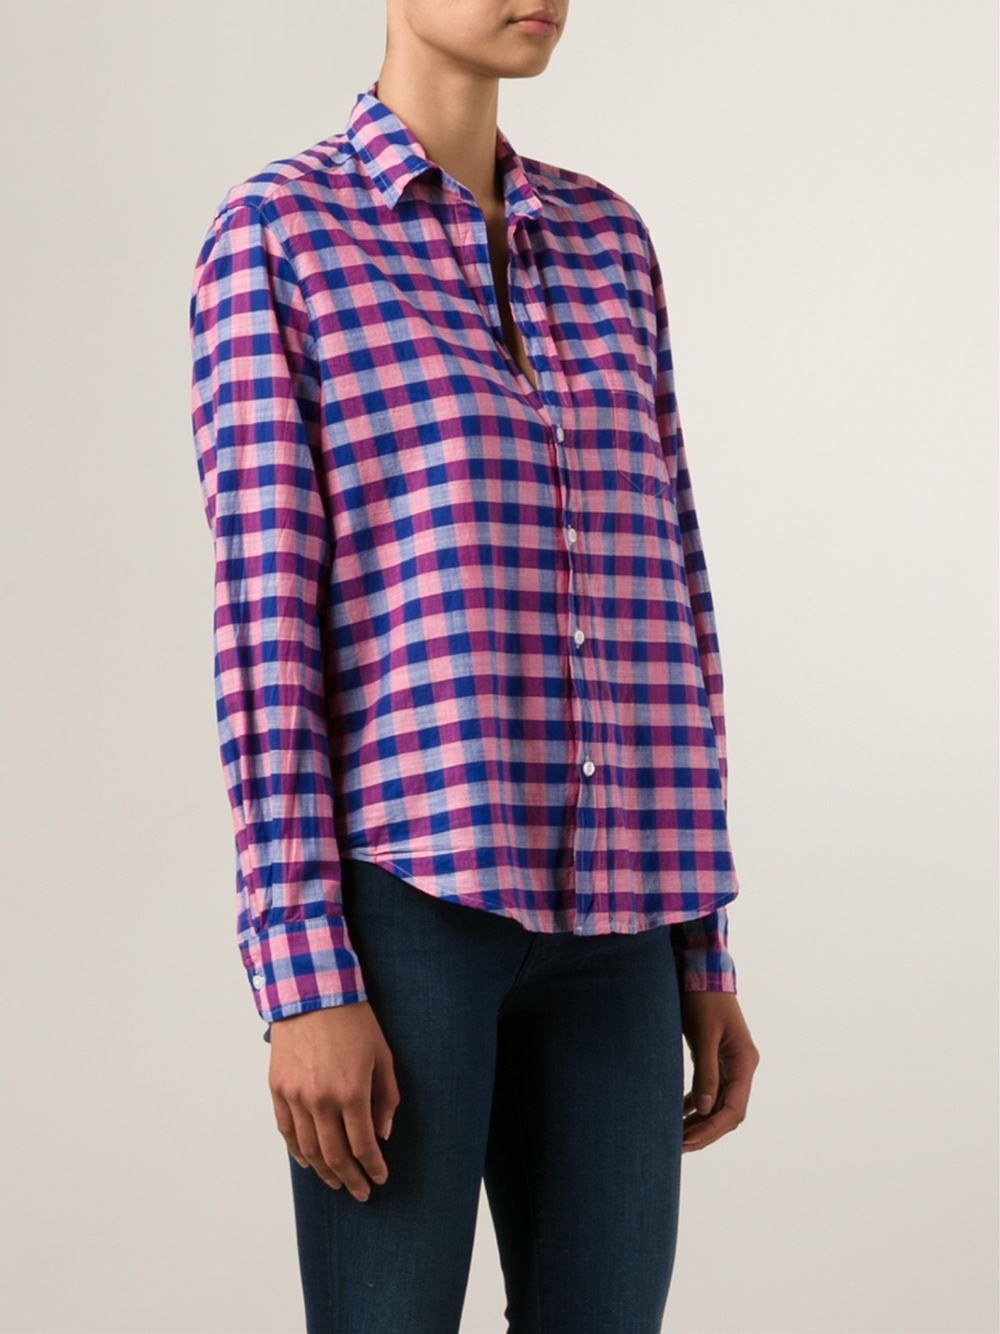 Frank Eileen Checked Shirt In Pink Pink Purple Lyst